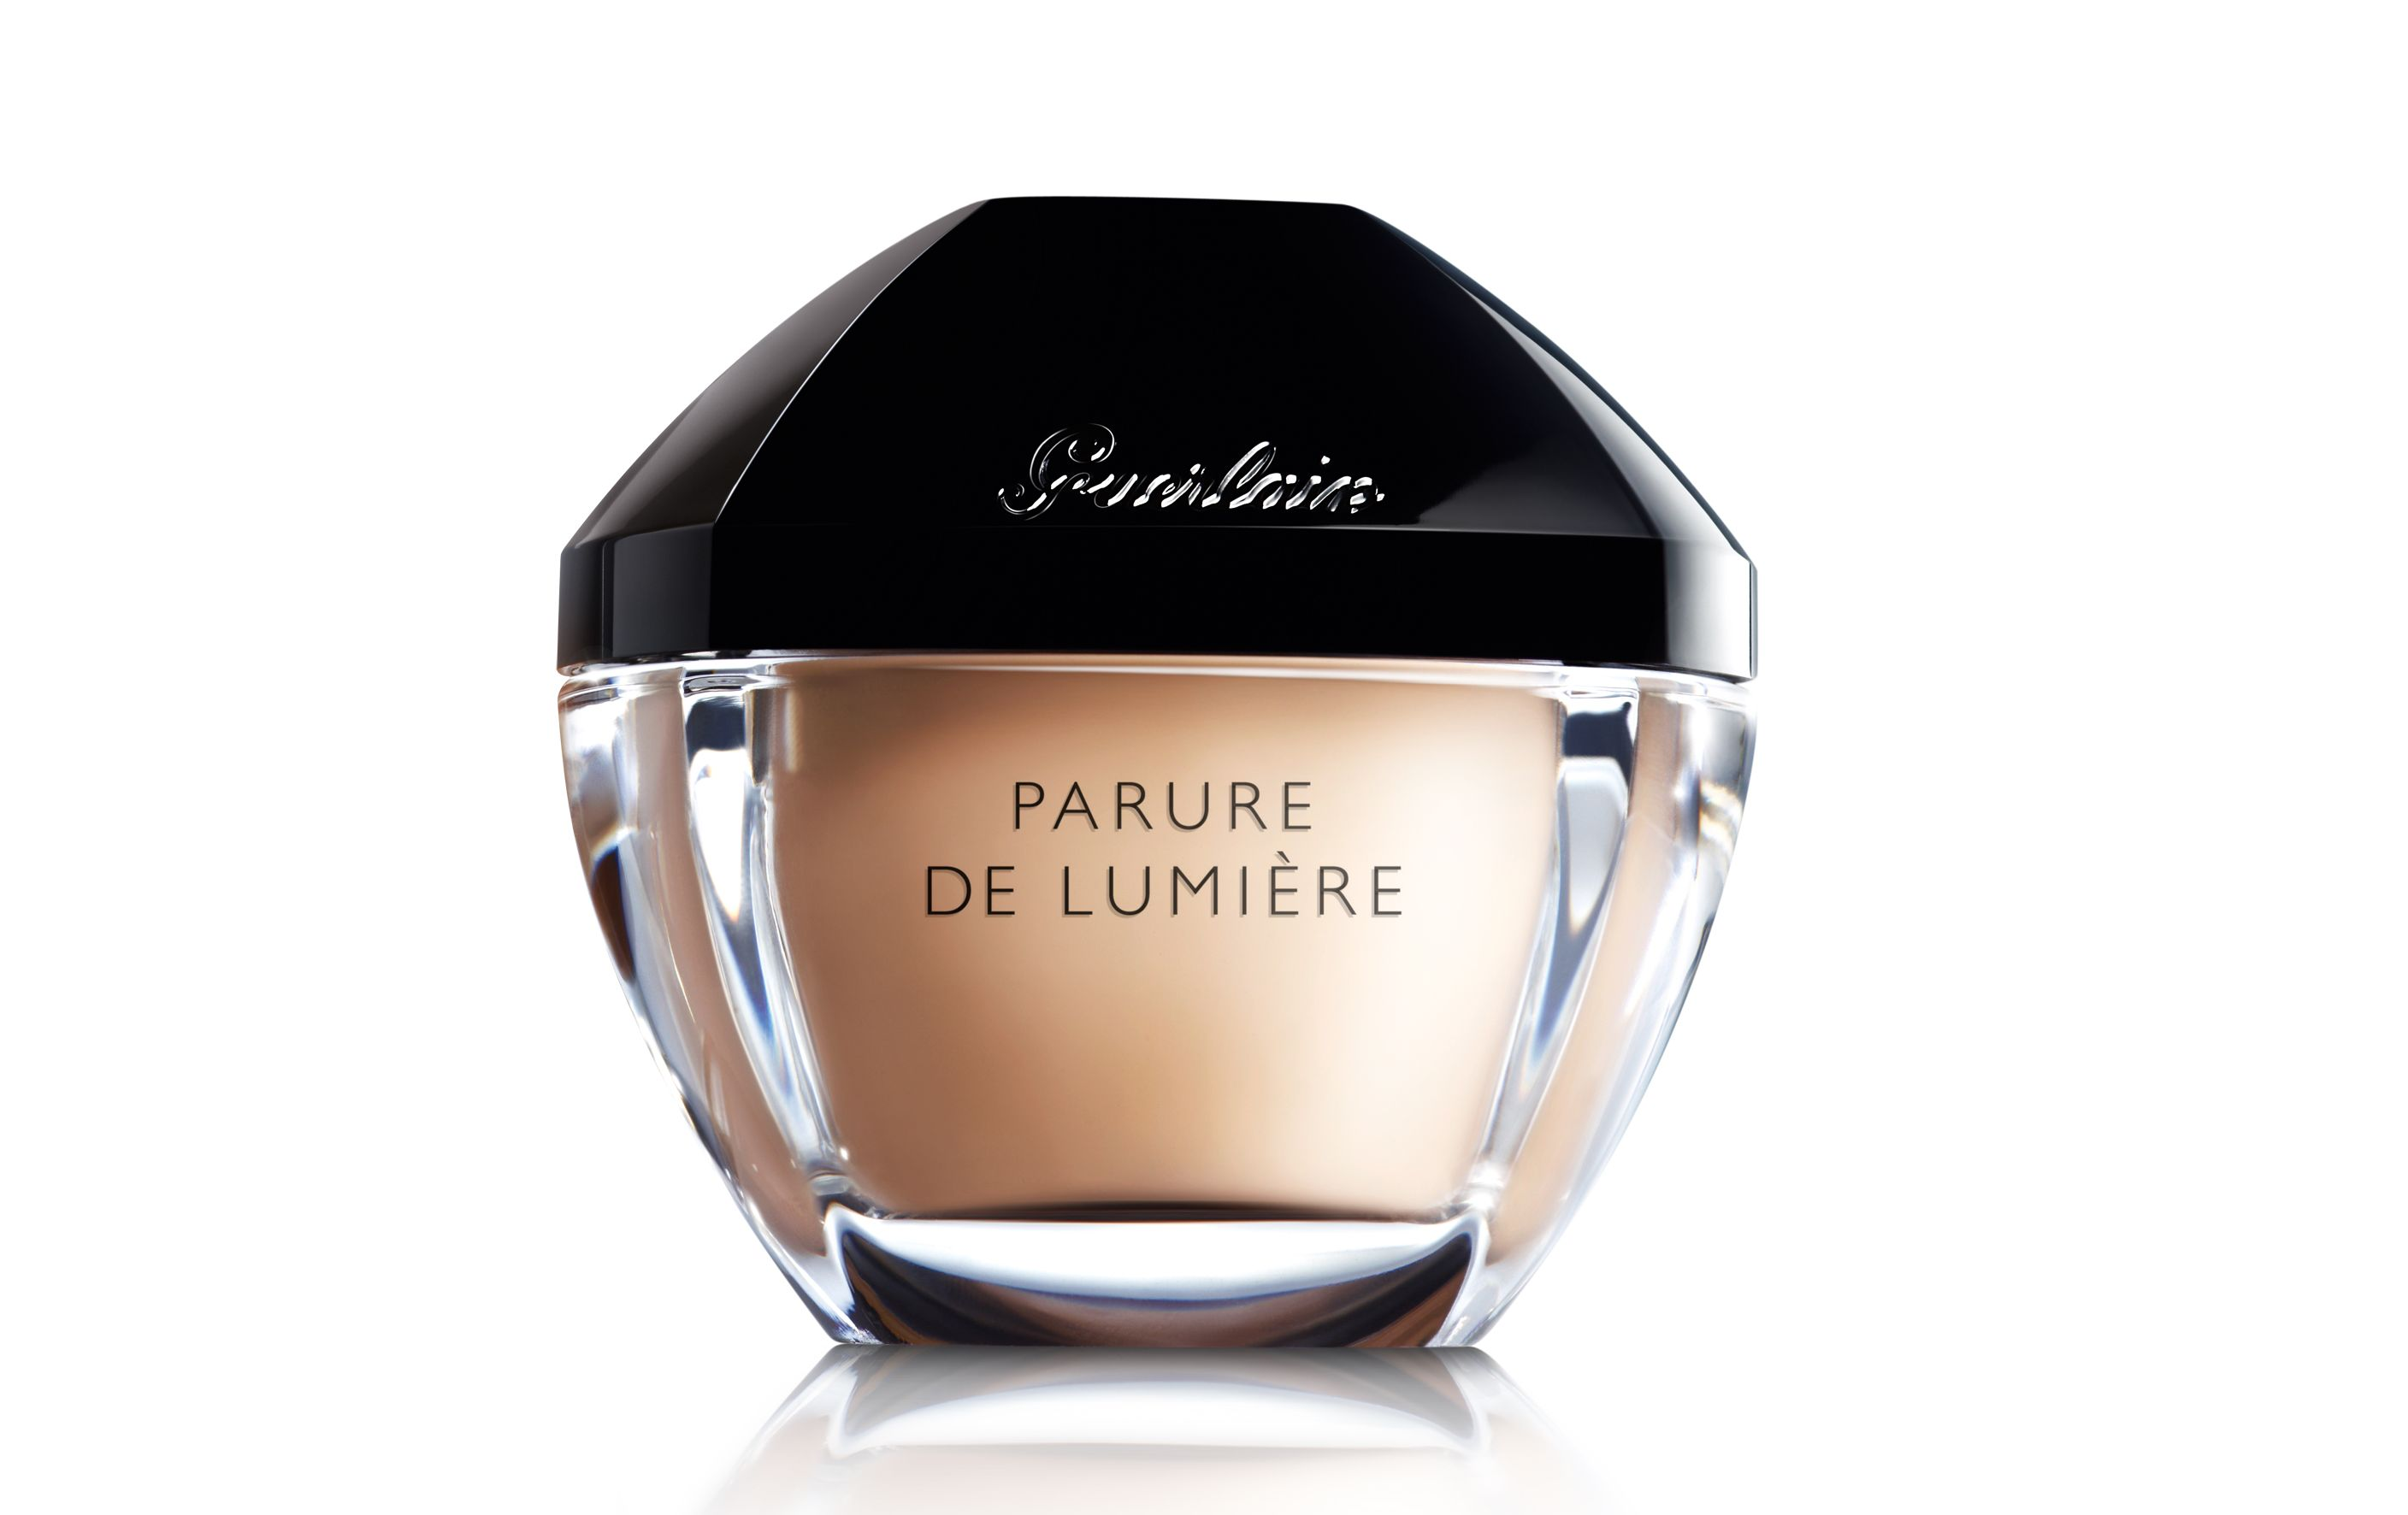 Parure De Lumiere Cream Foundation 30ml